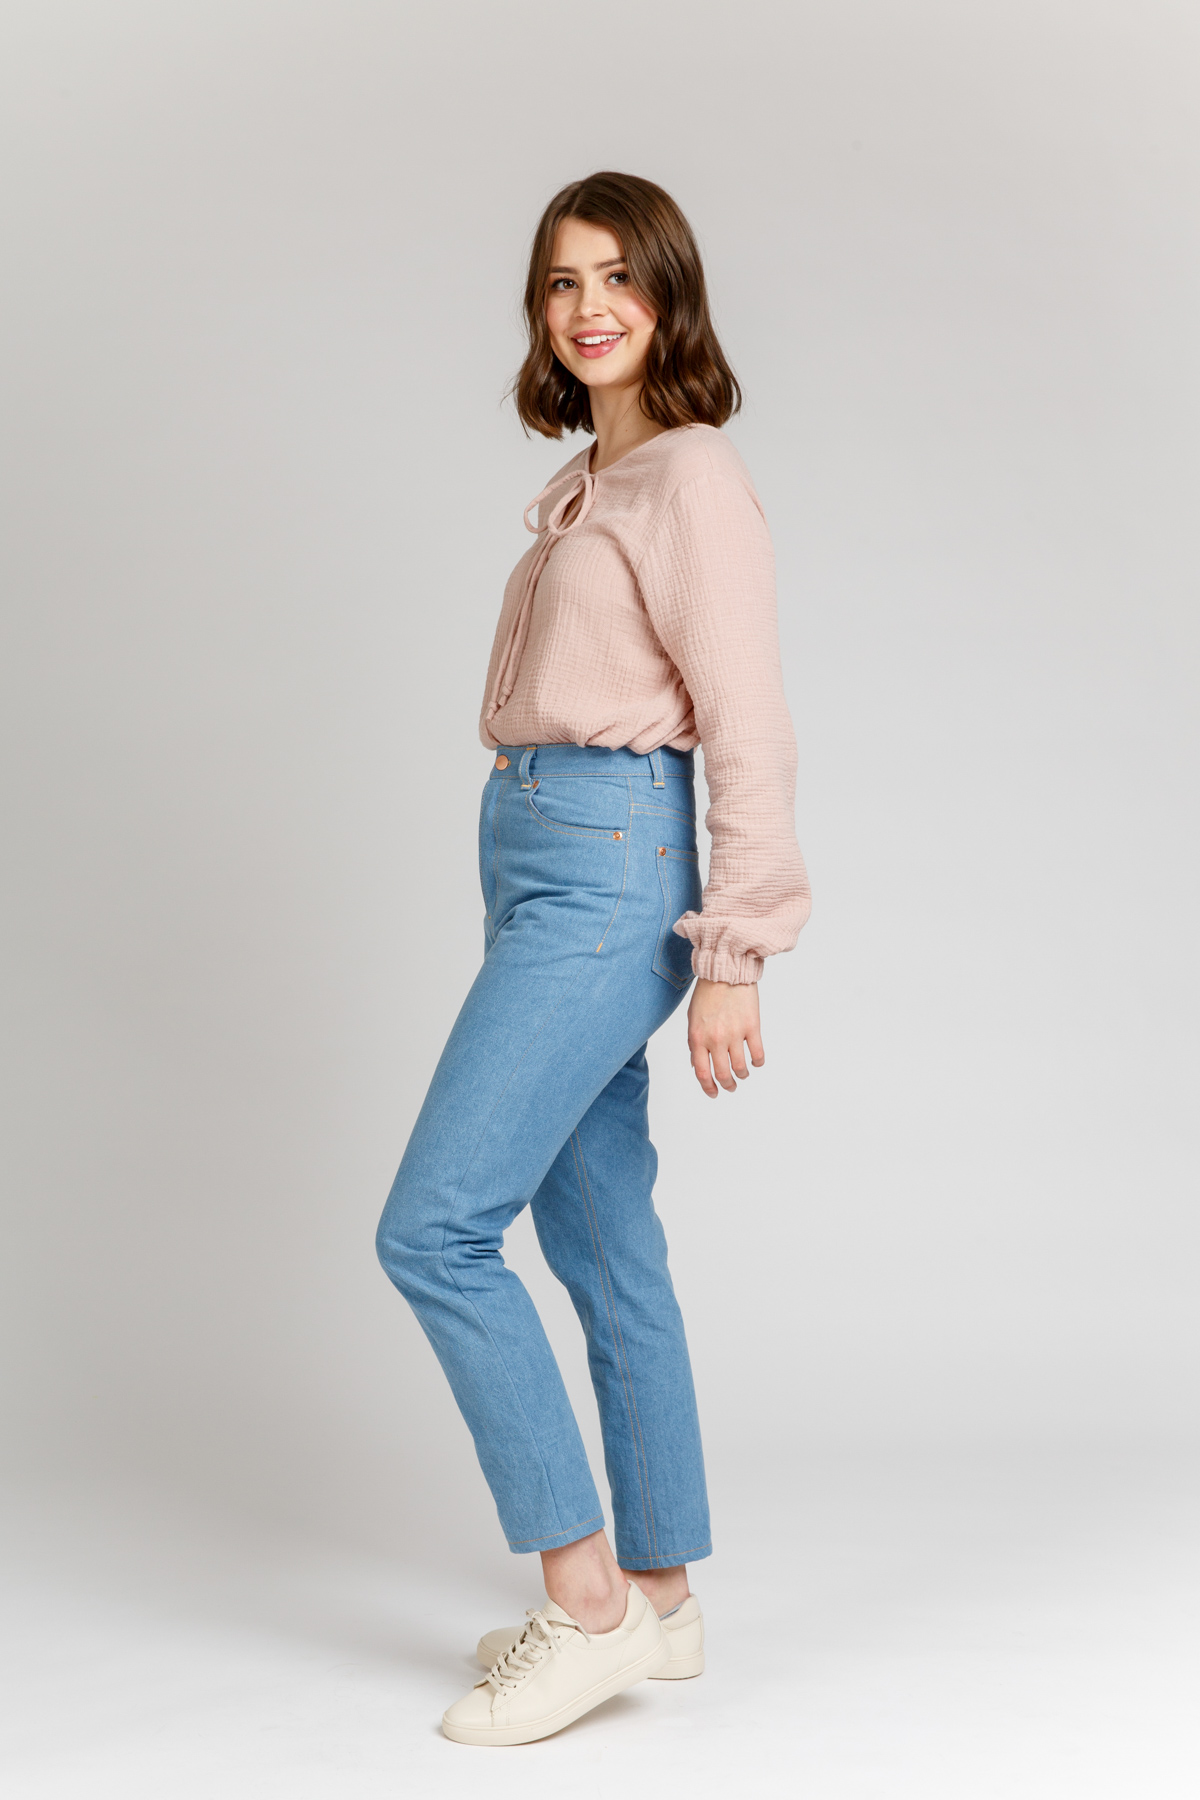 Megan Nielsen Dawn rigid jeans sewing pattern set // vintage inspired rigid jean with four views, multiple lengths and multiple fly options!